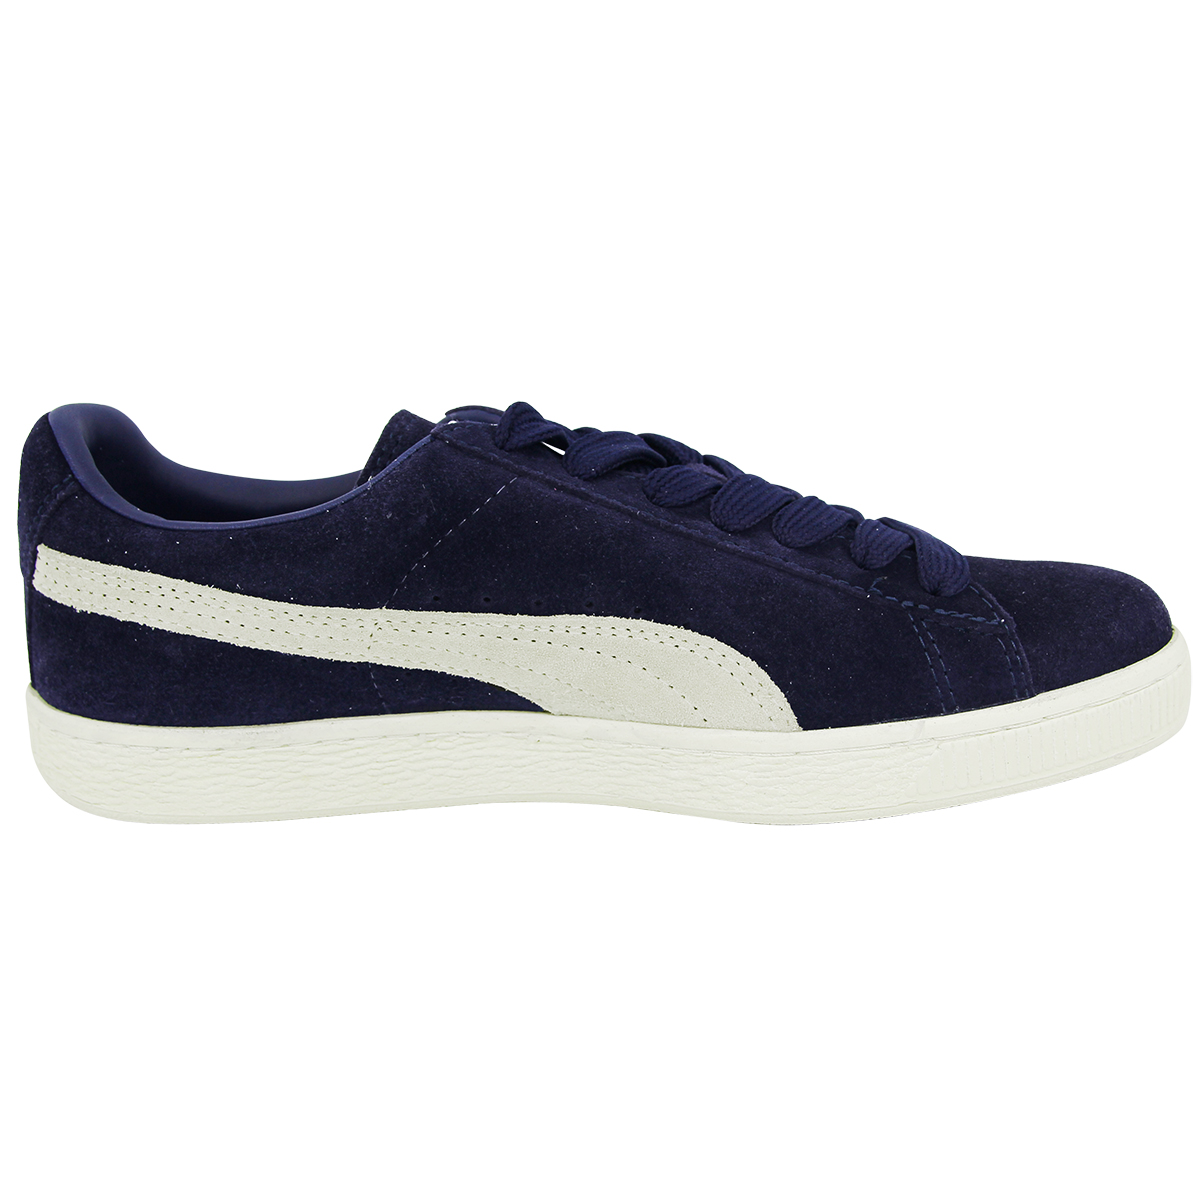 Chaussures Unisex Suede Classic Sneakers Puma Cuir Mode Aw07qwE